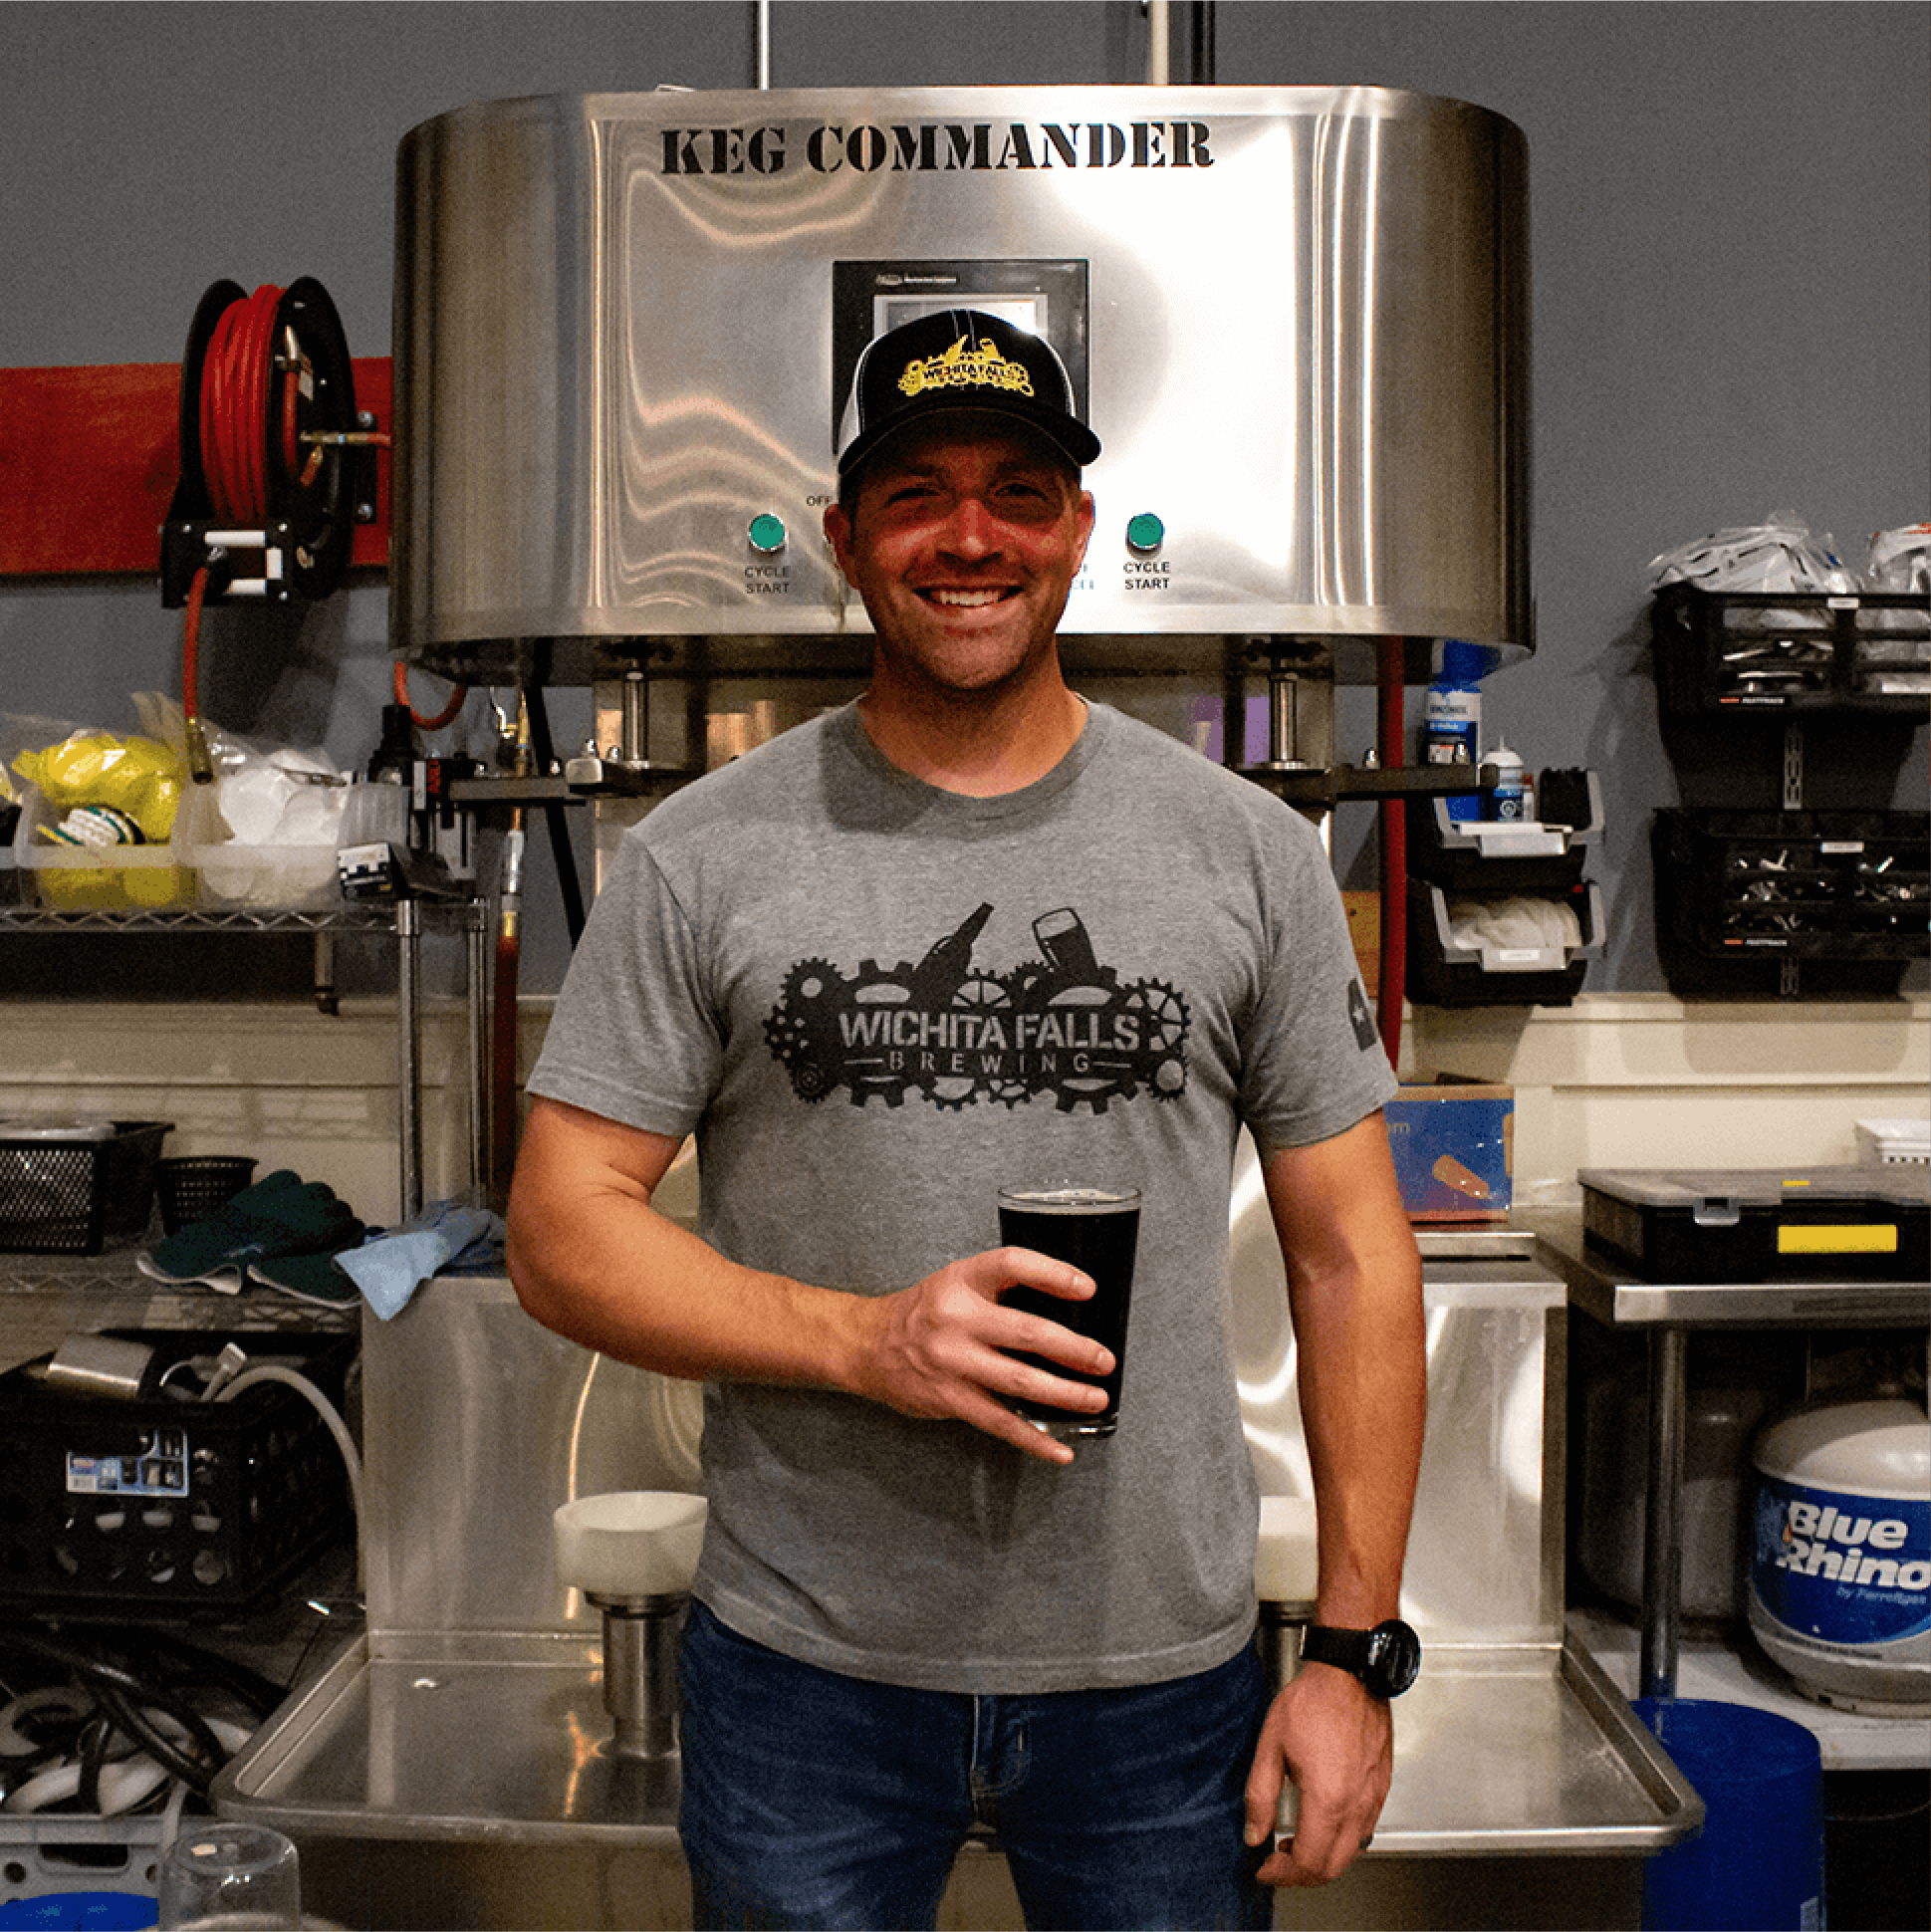 Russ, our Vice President and Co-Founder standing beer in hand in front of our Keg Commander